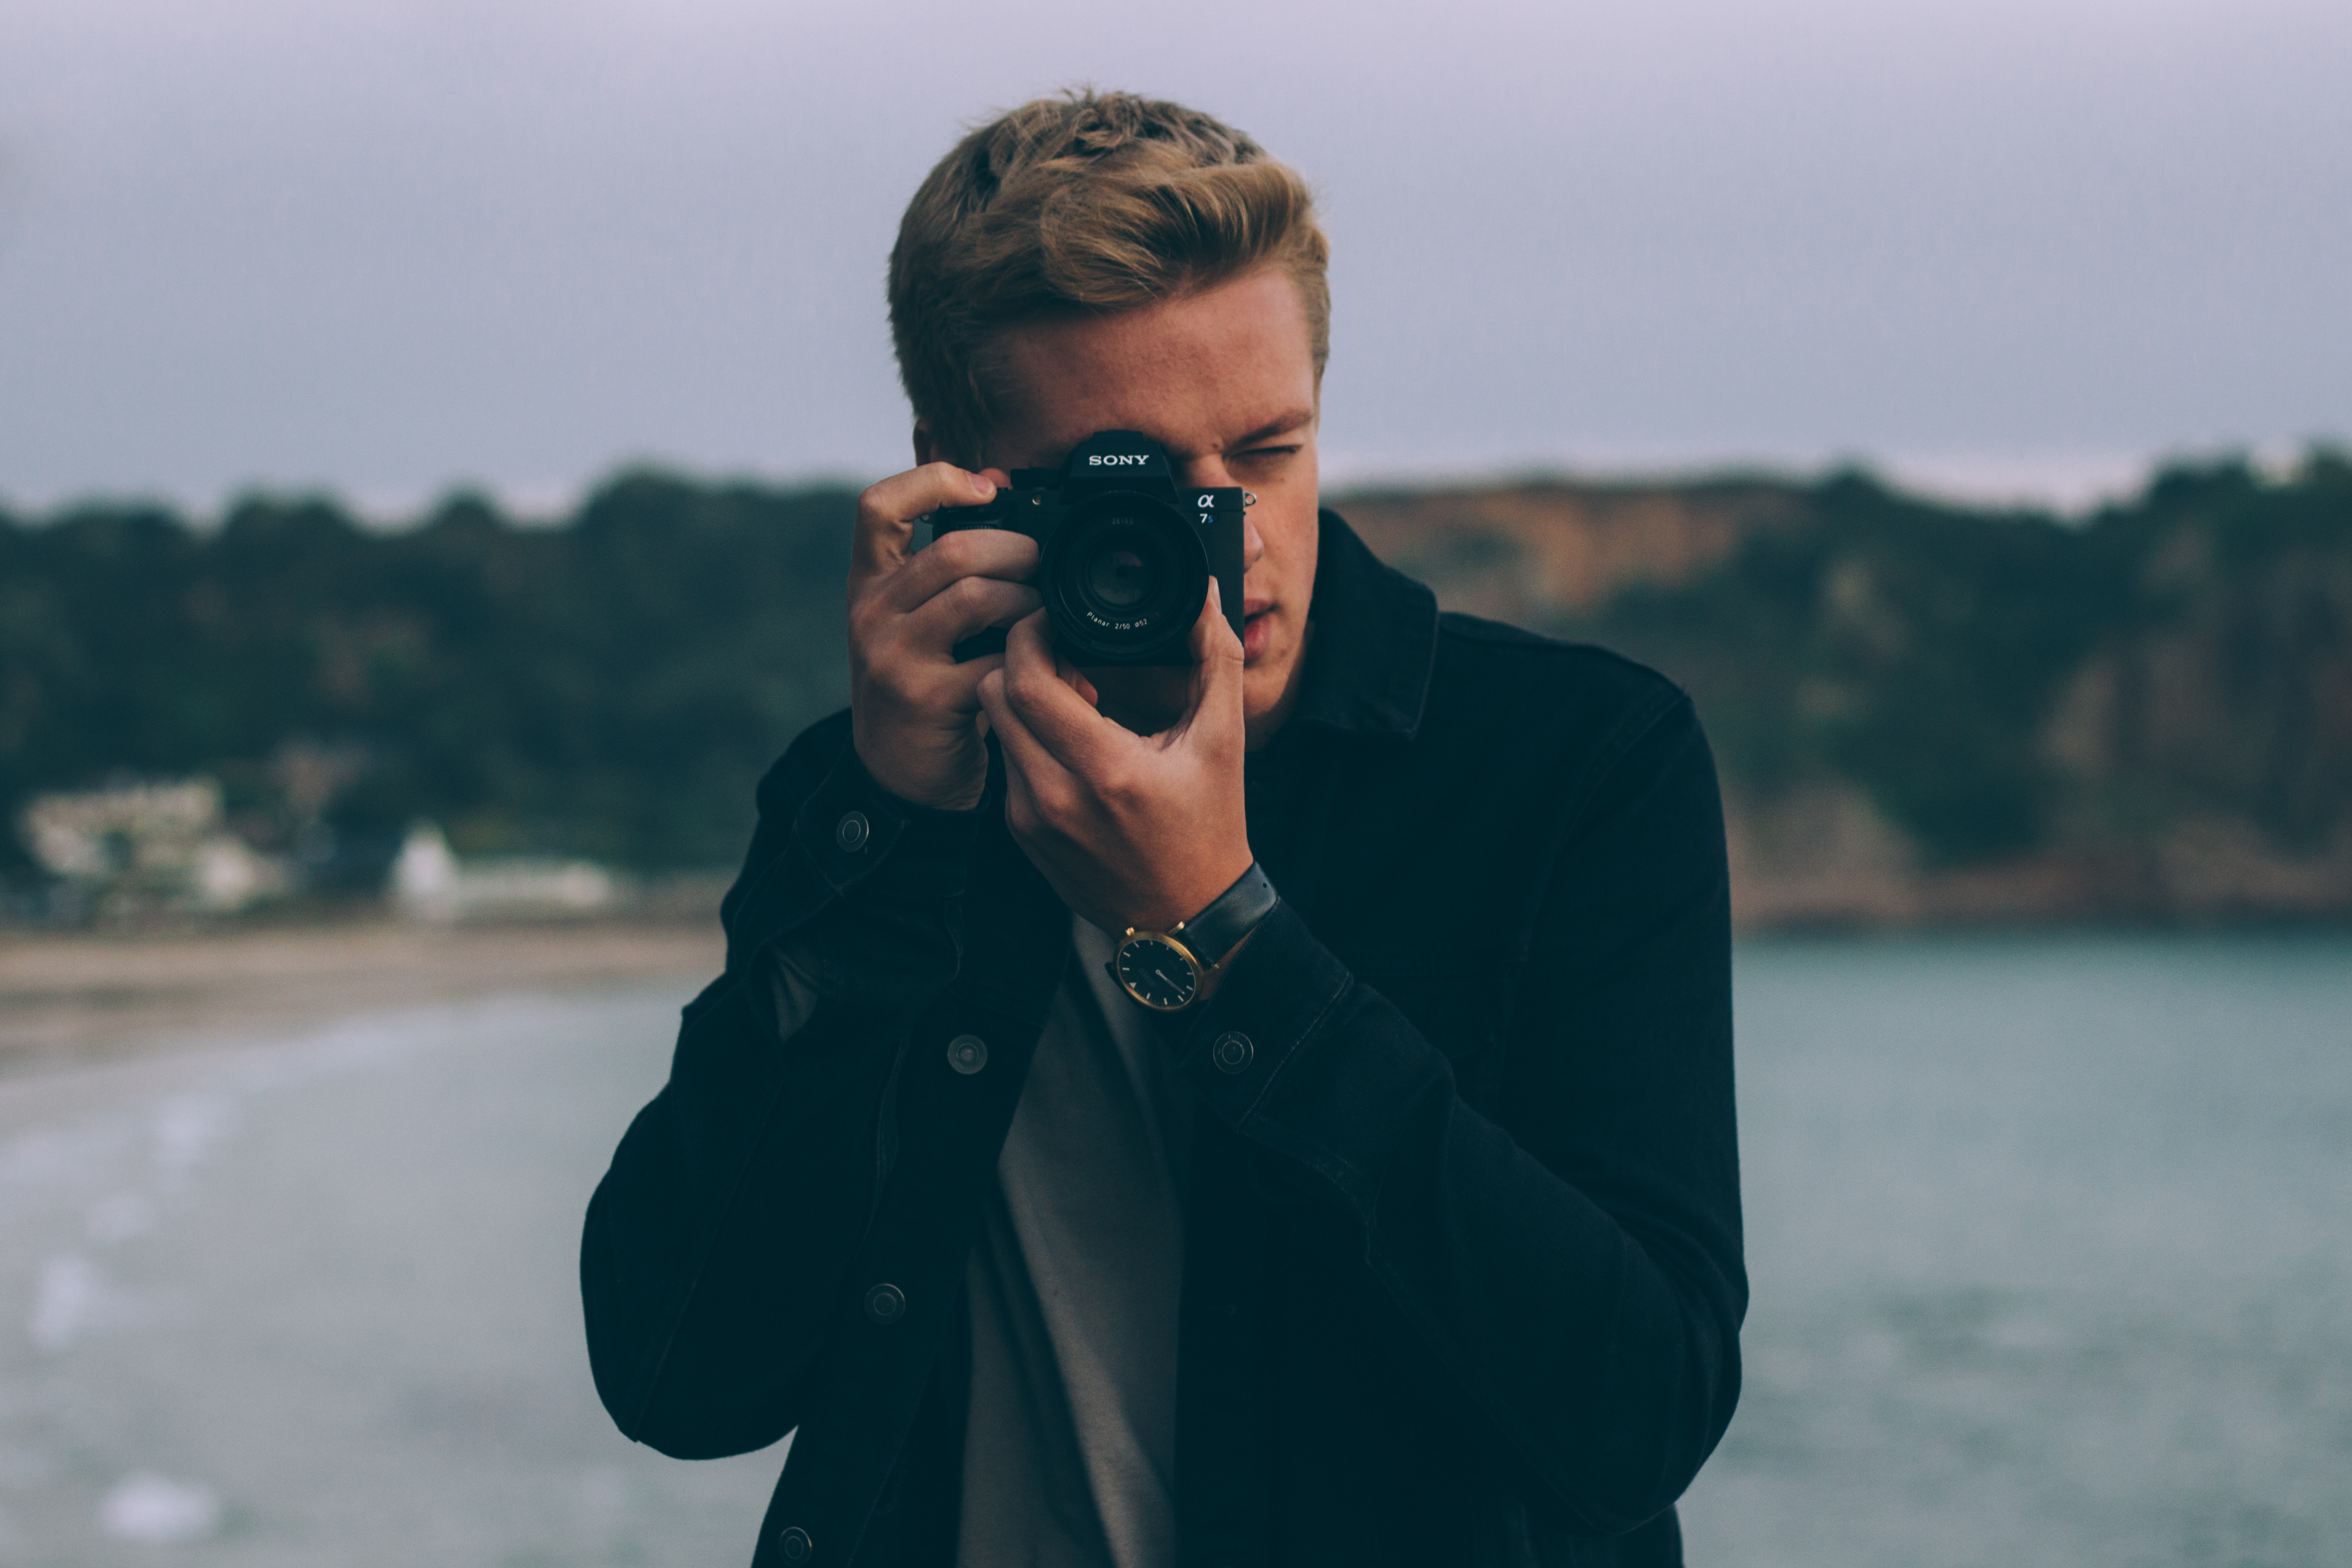 teenage boy holding a camera